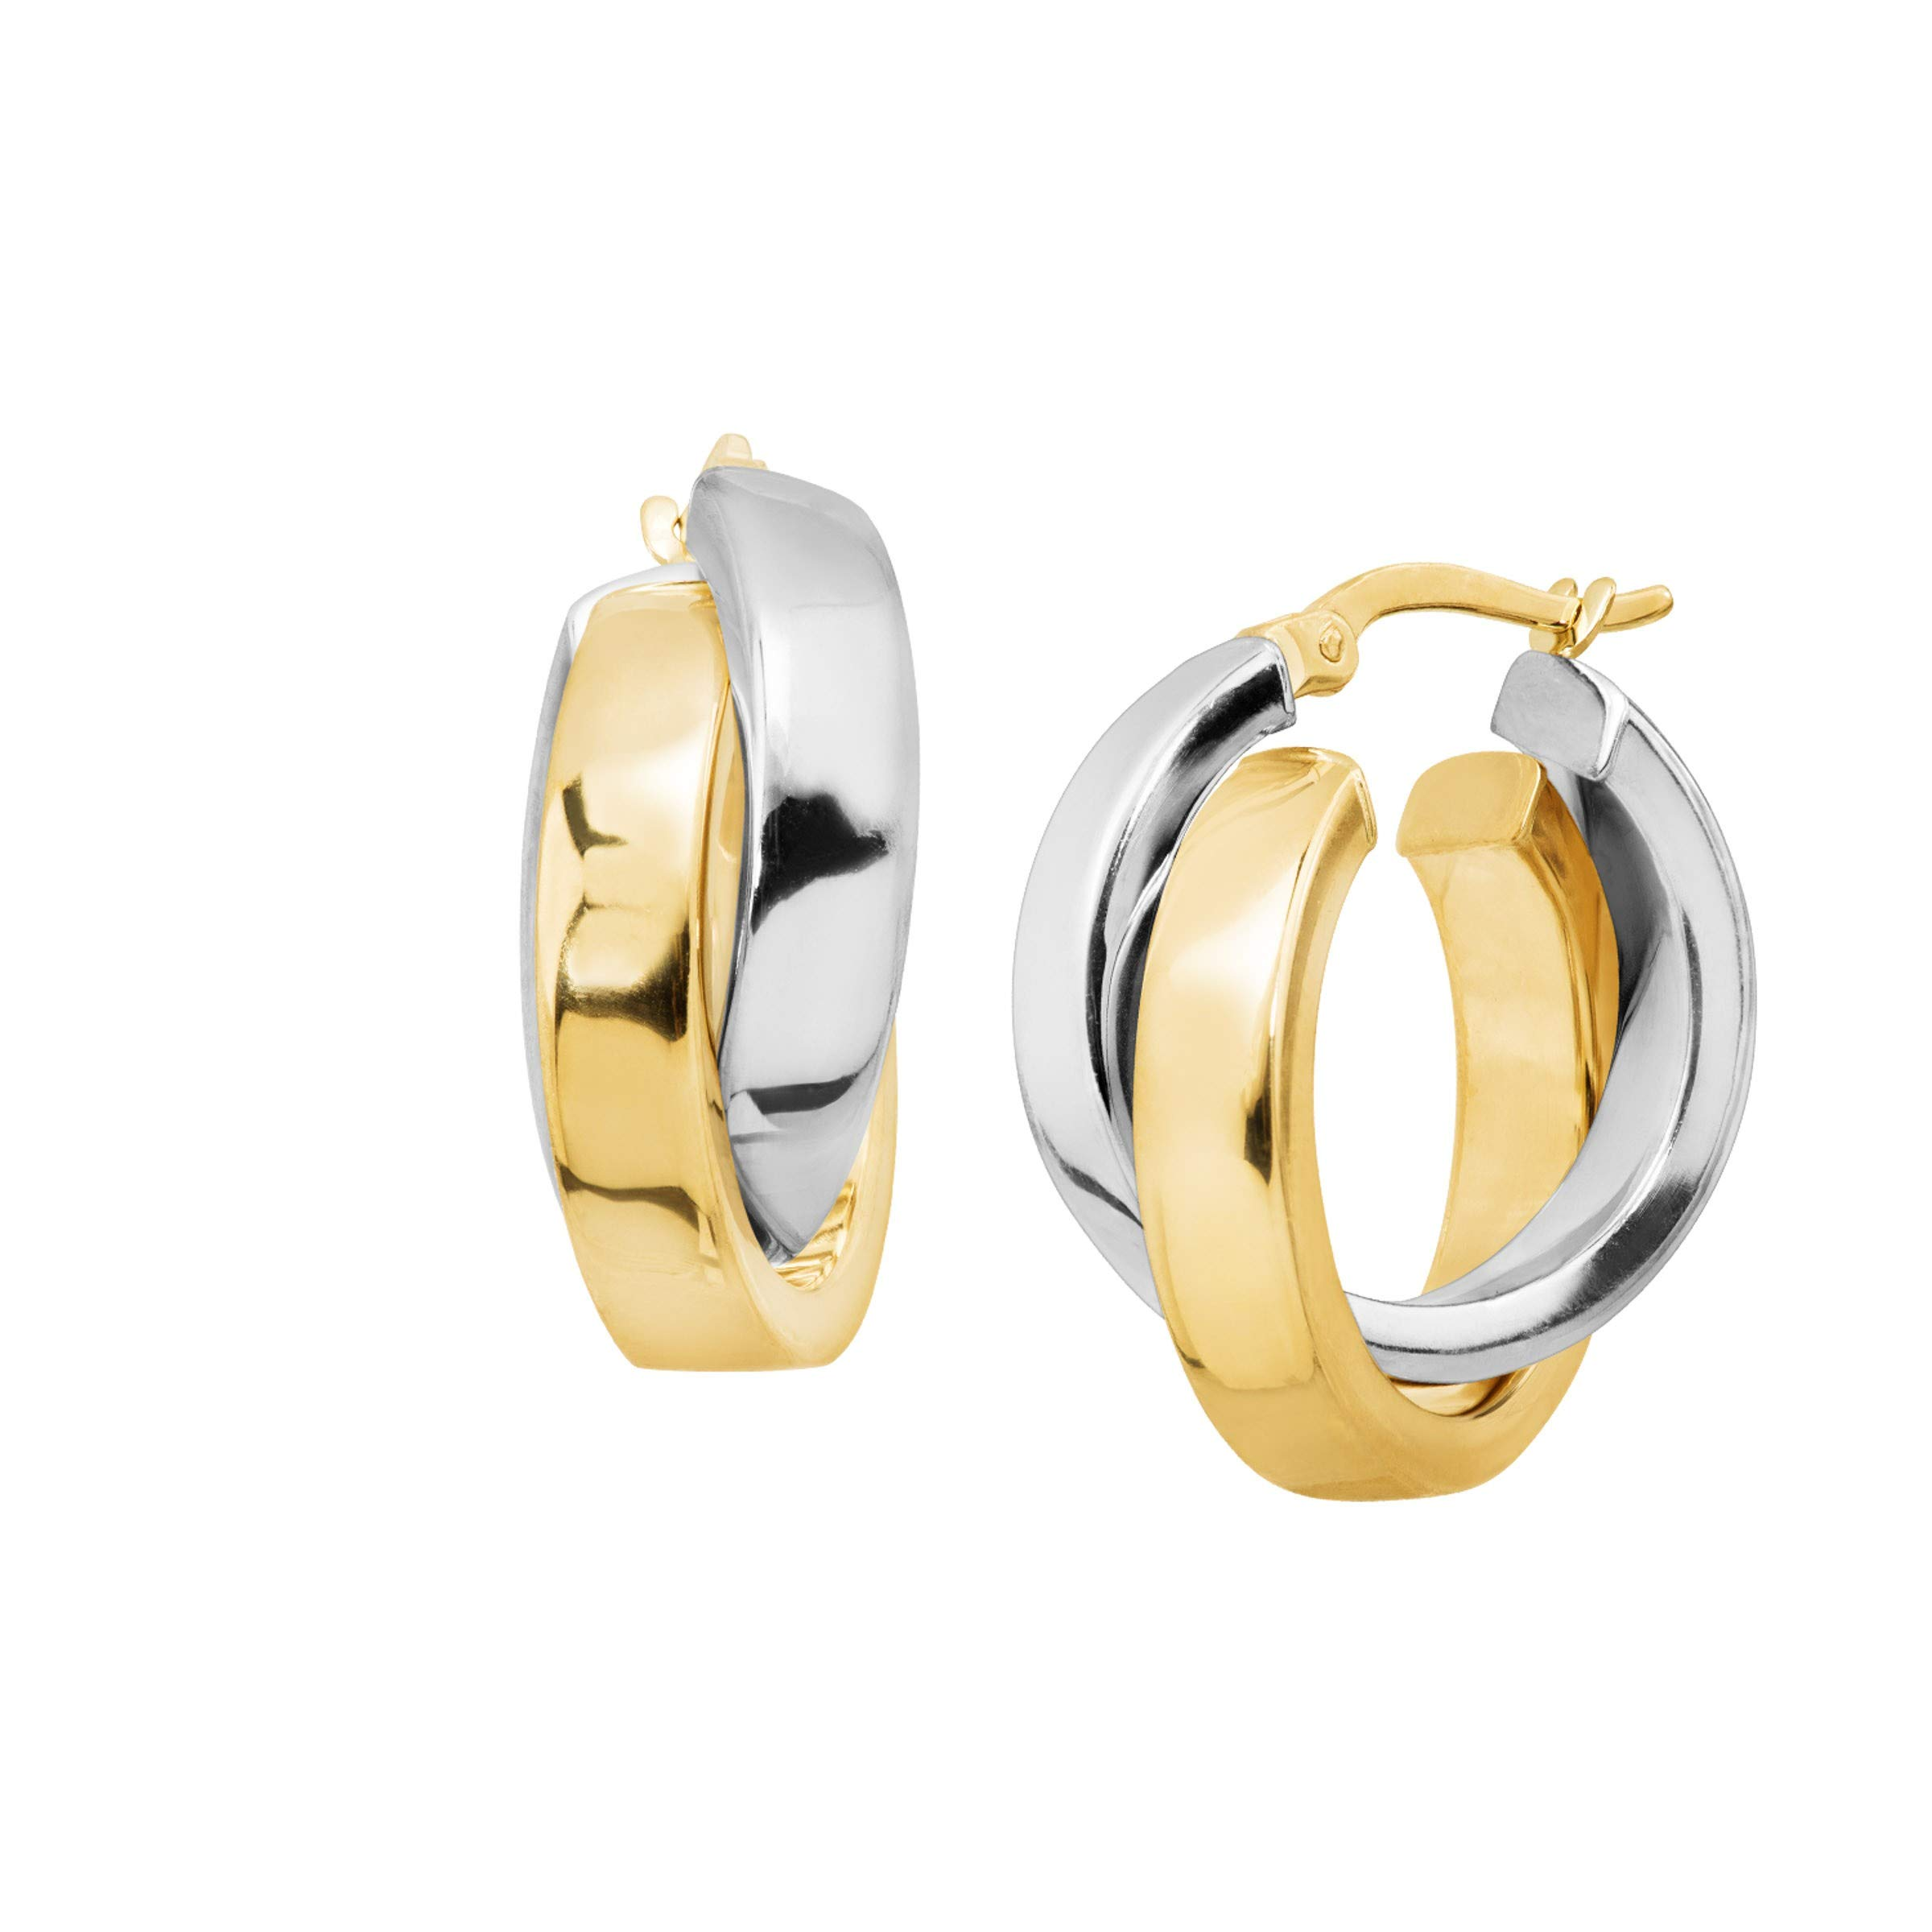 Eternity Gold Overlapping Hoop Earrings in 14K Two-Tone Gold by Eternity Gold